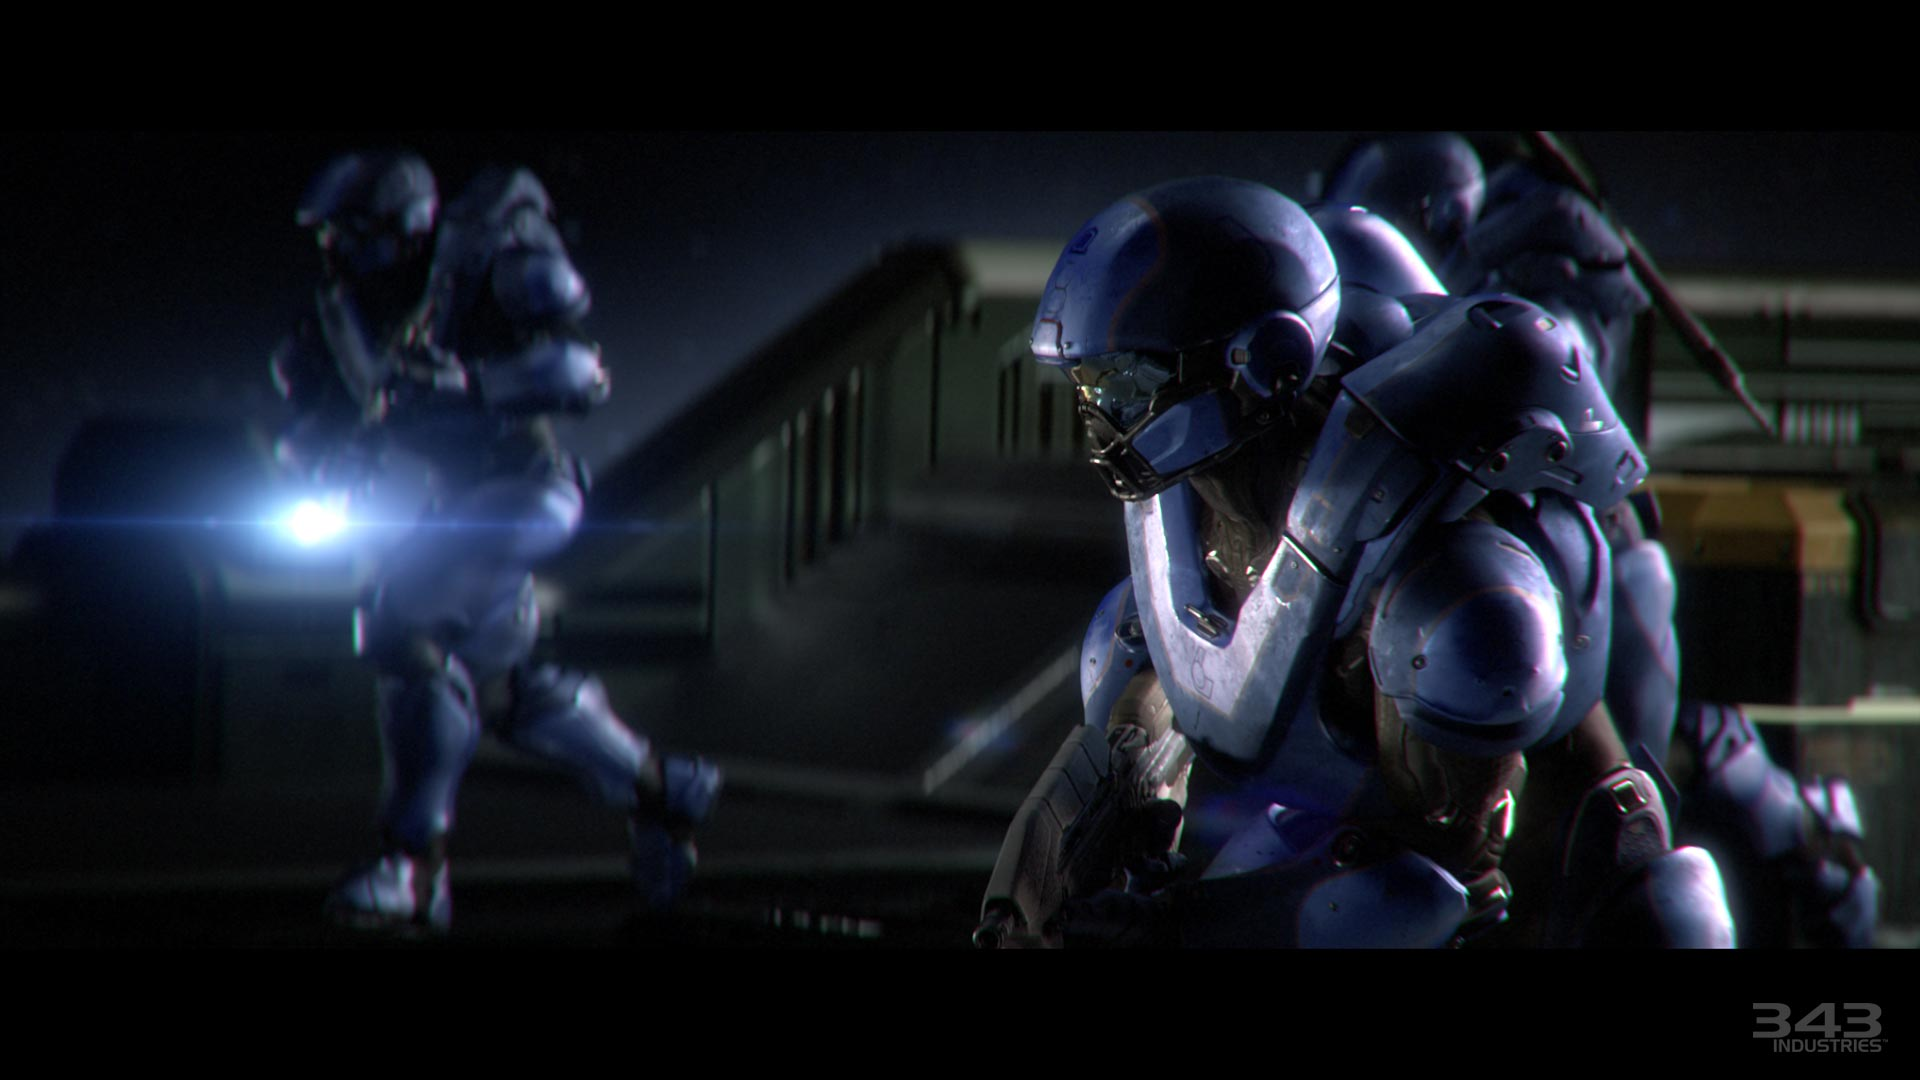 Watch an hour-long gameplay video of Halo 5 multiplayer beta - VG247